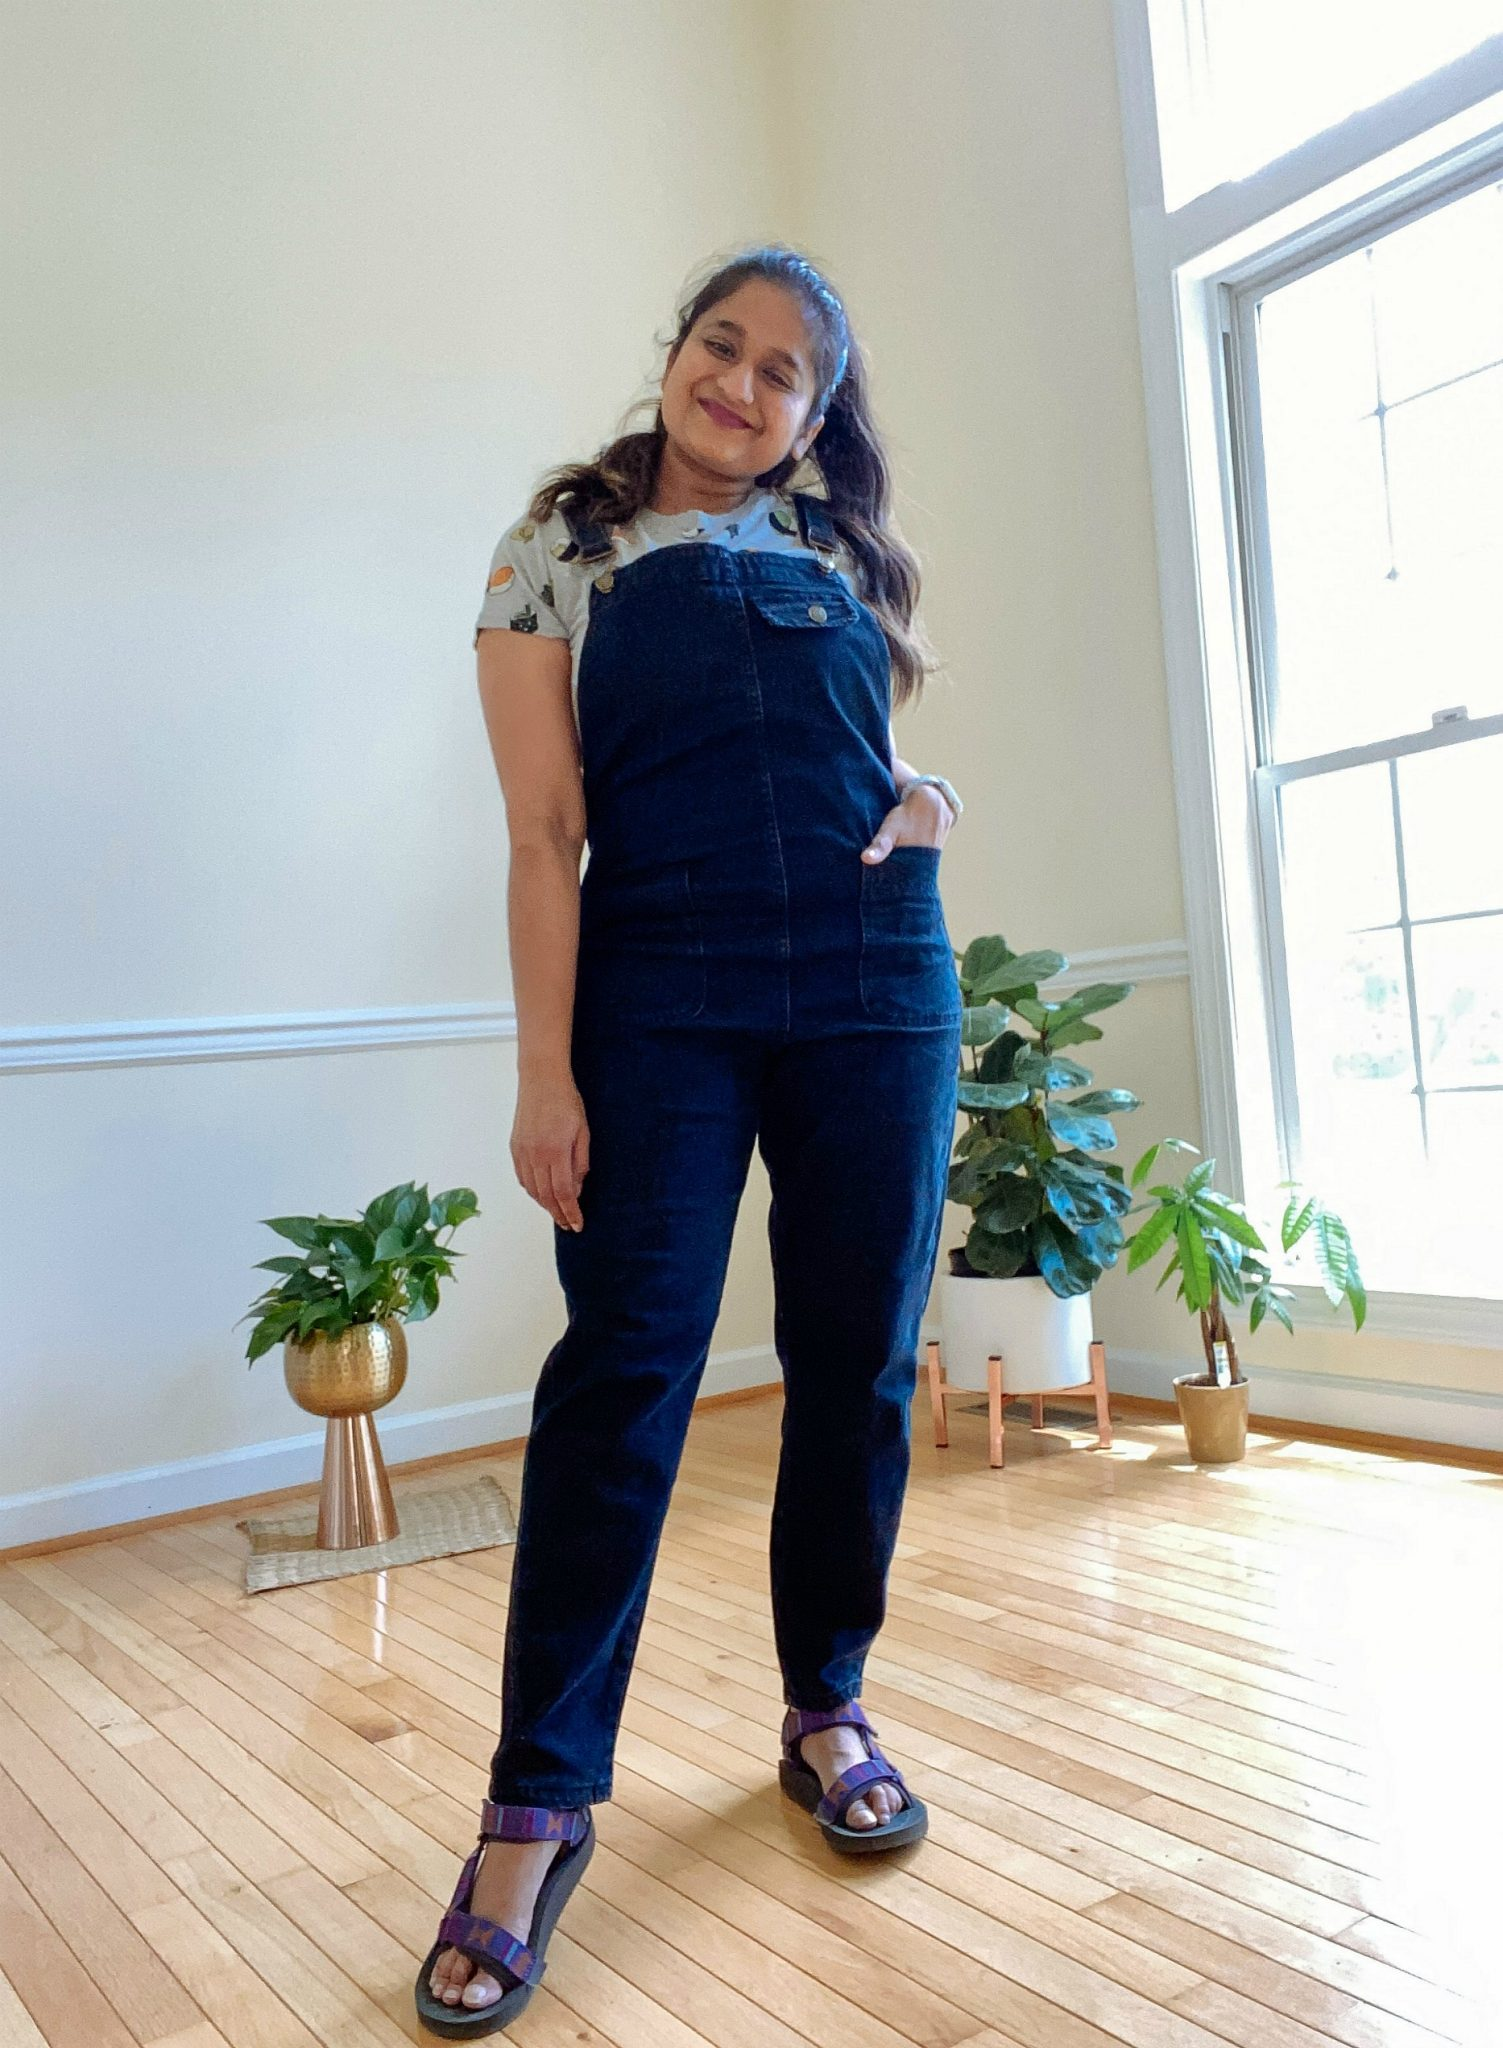 Wearing Amazon Soojun Women's Casual Baggy Denim Bib Overall 1 | Casual Outfits by popular Maryland lifestyle blog, Dreaming Loud: image of a woman wearing a Amazon Soojun Women's Casual Baggy Denim Bib Overall.